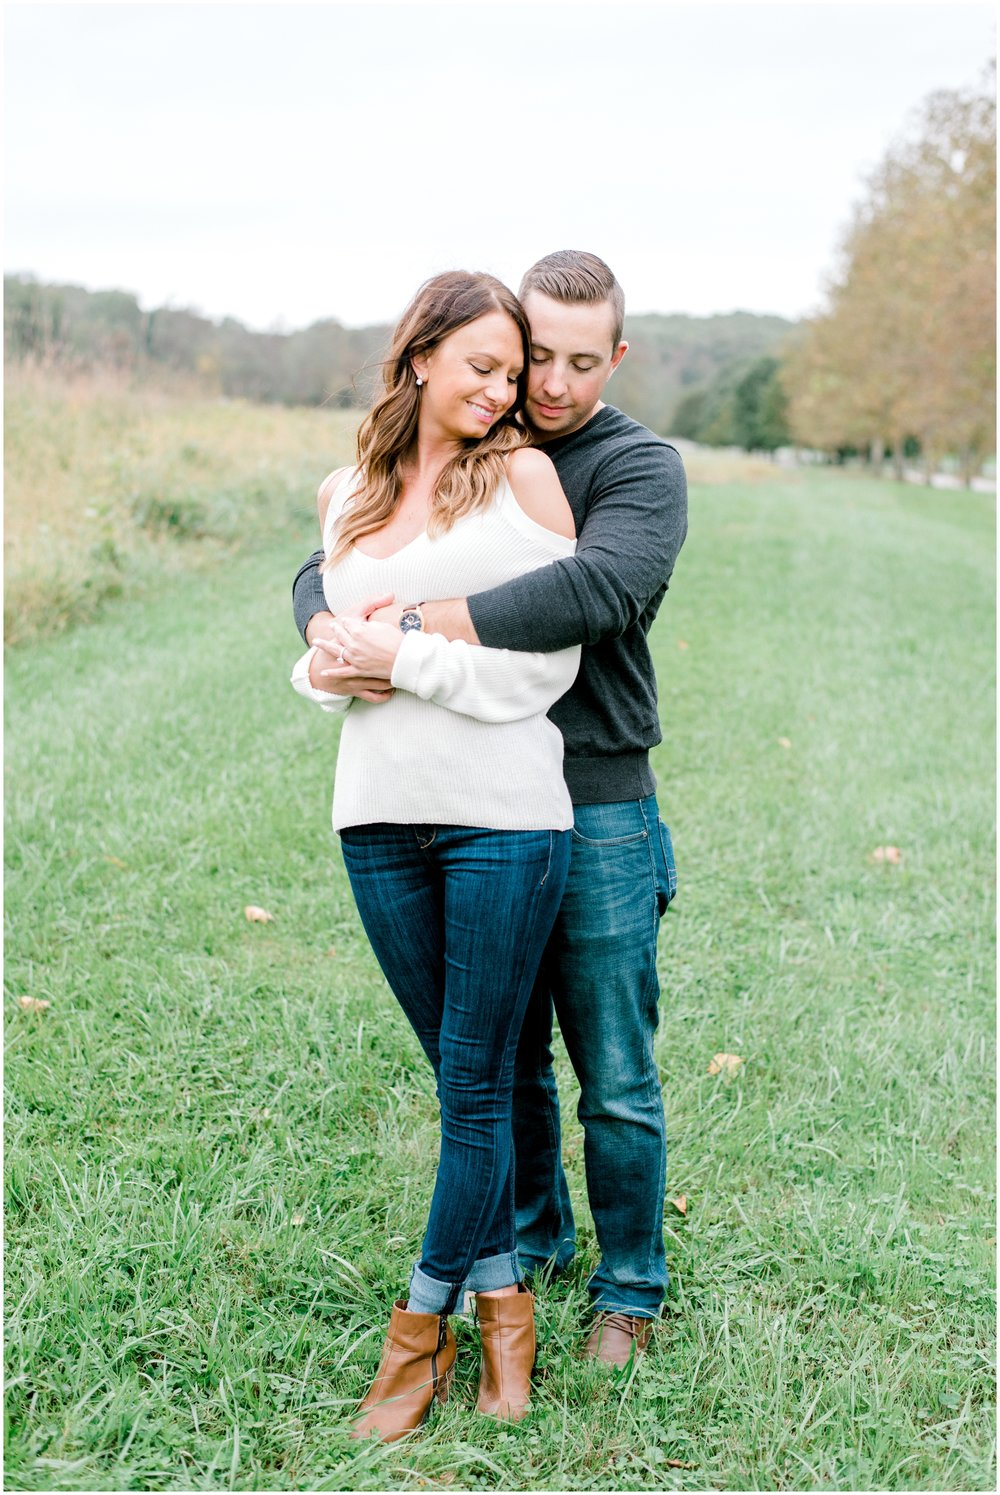 Fall Springton Manor Farm Engagement Session - Krista Brackin Photography_0025.jpg